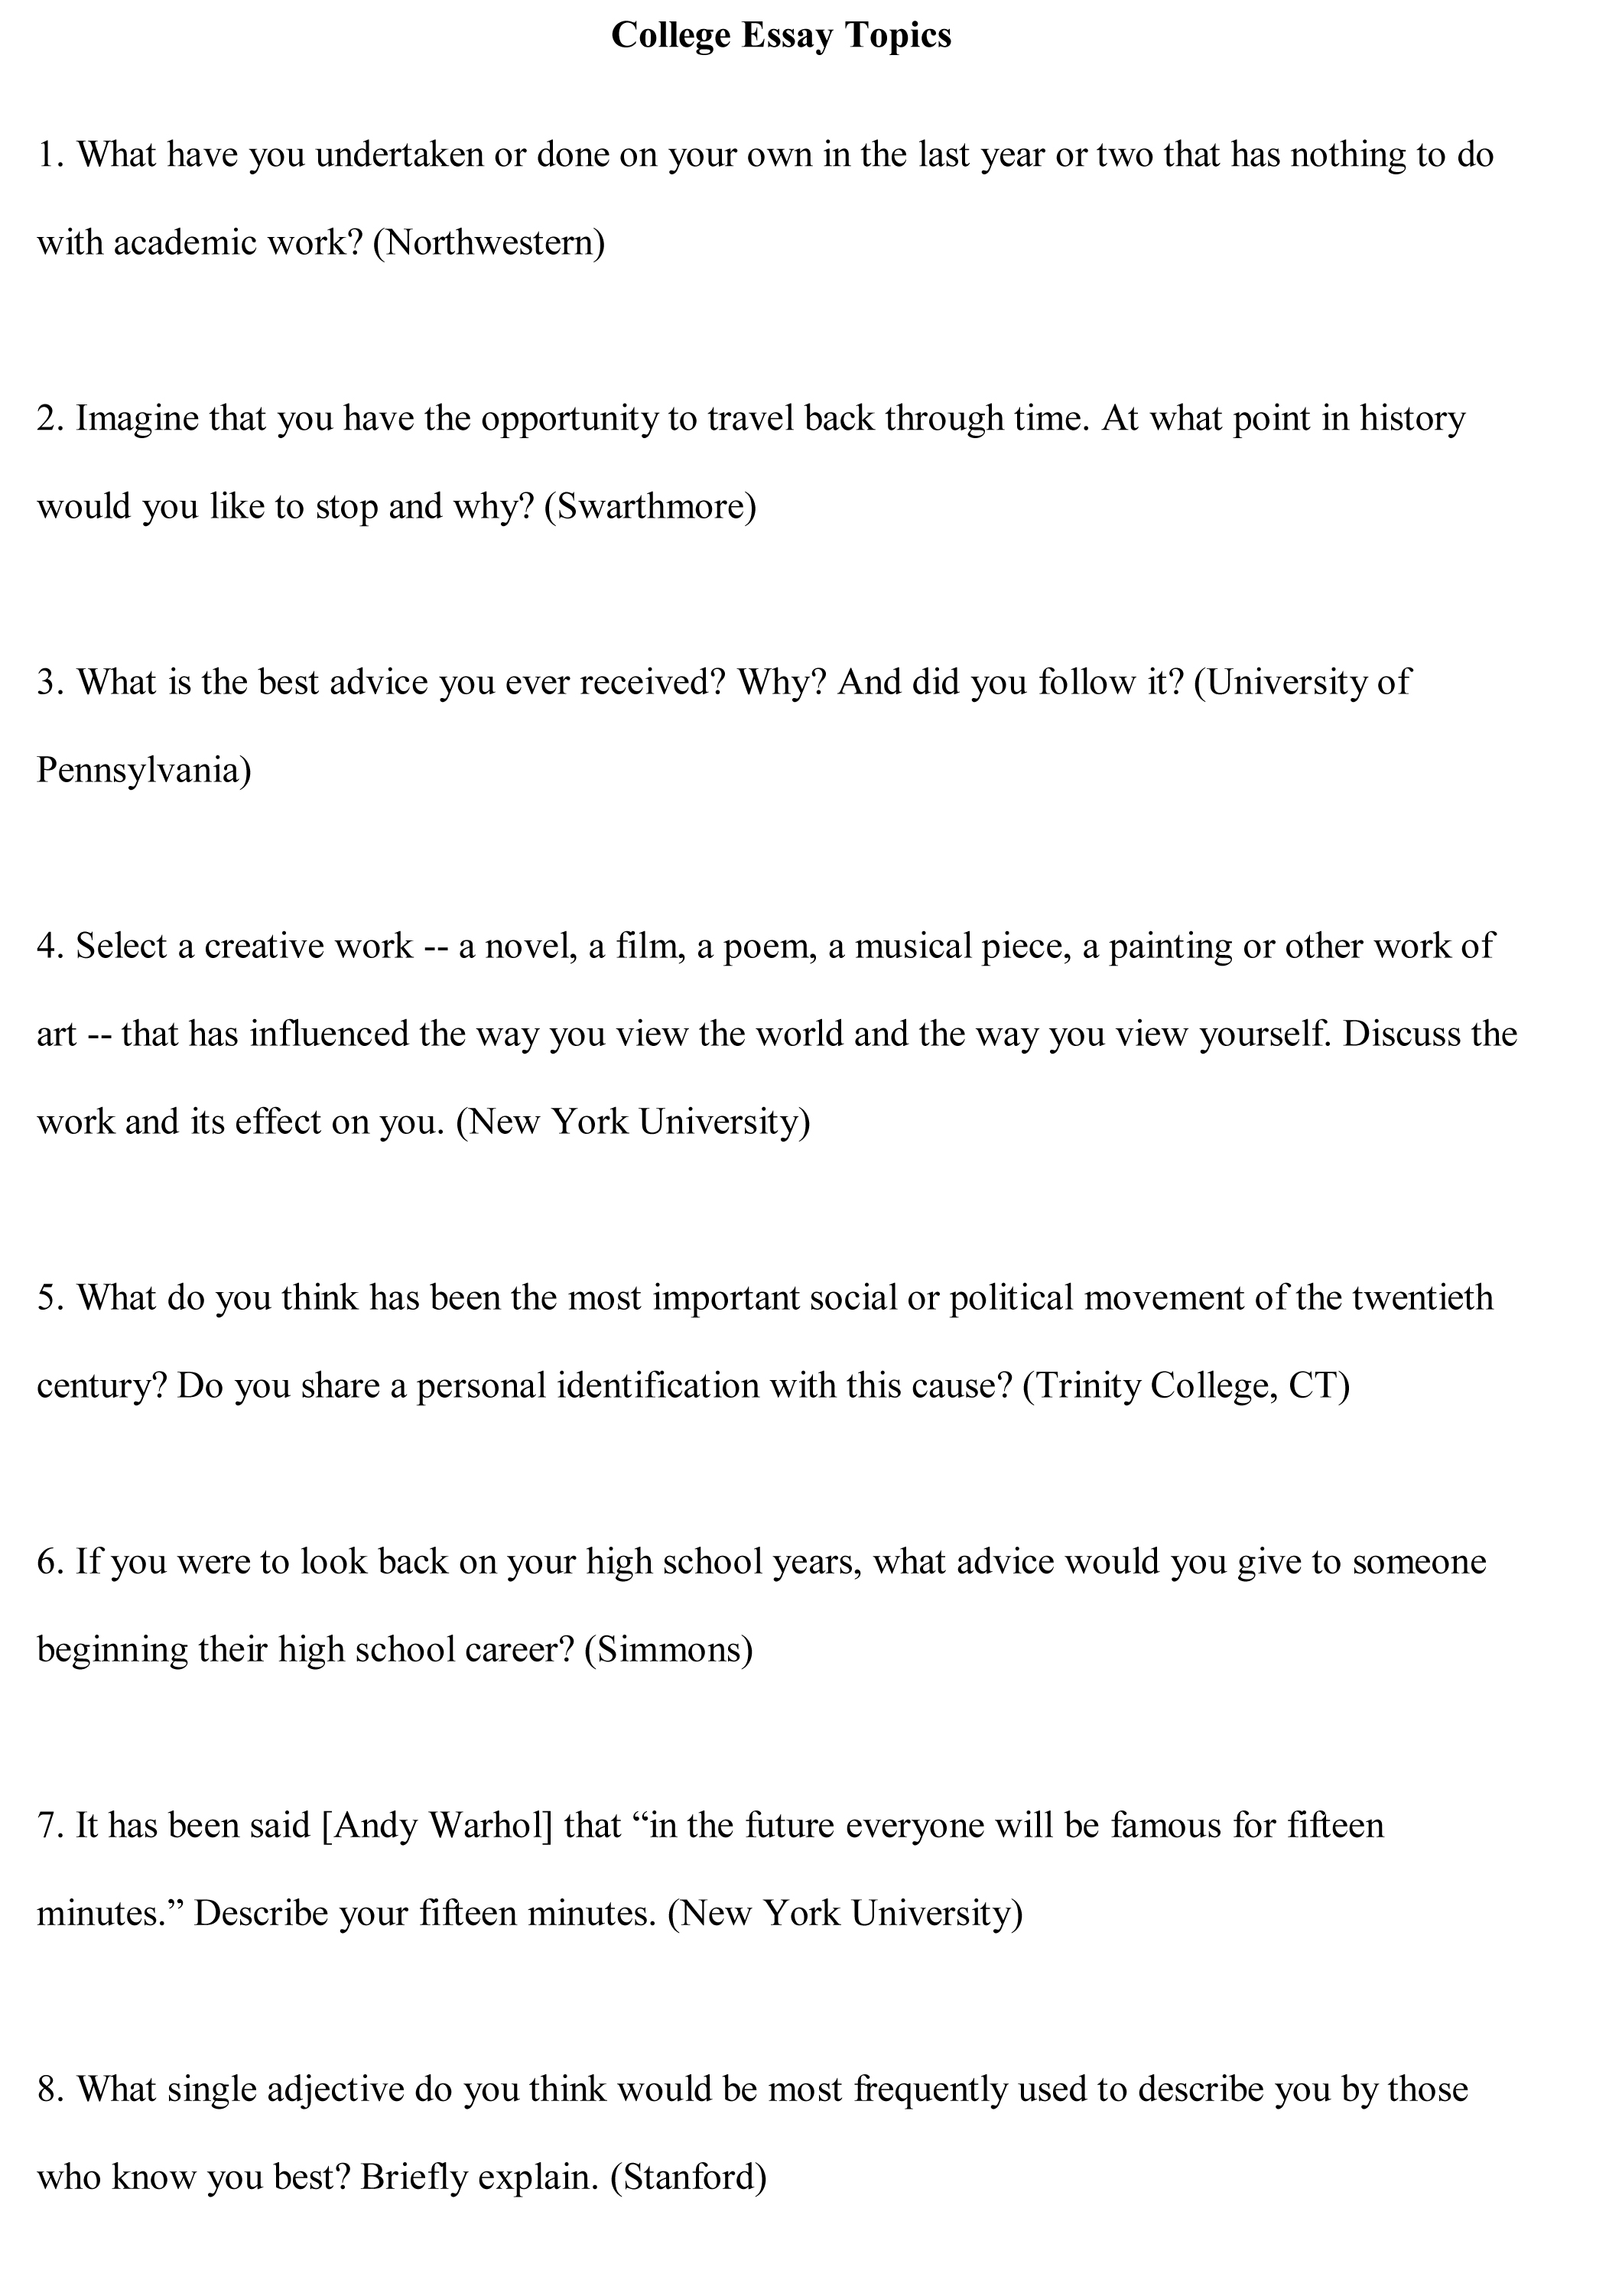 014 Essay Topics College Free Sample1 Archaicawful For 8th Grade List Class 10 Questions Macbeth Act 2 Full